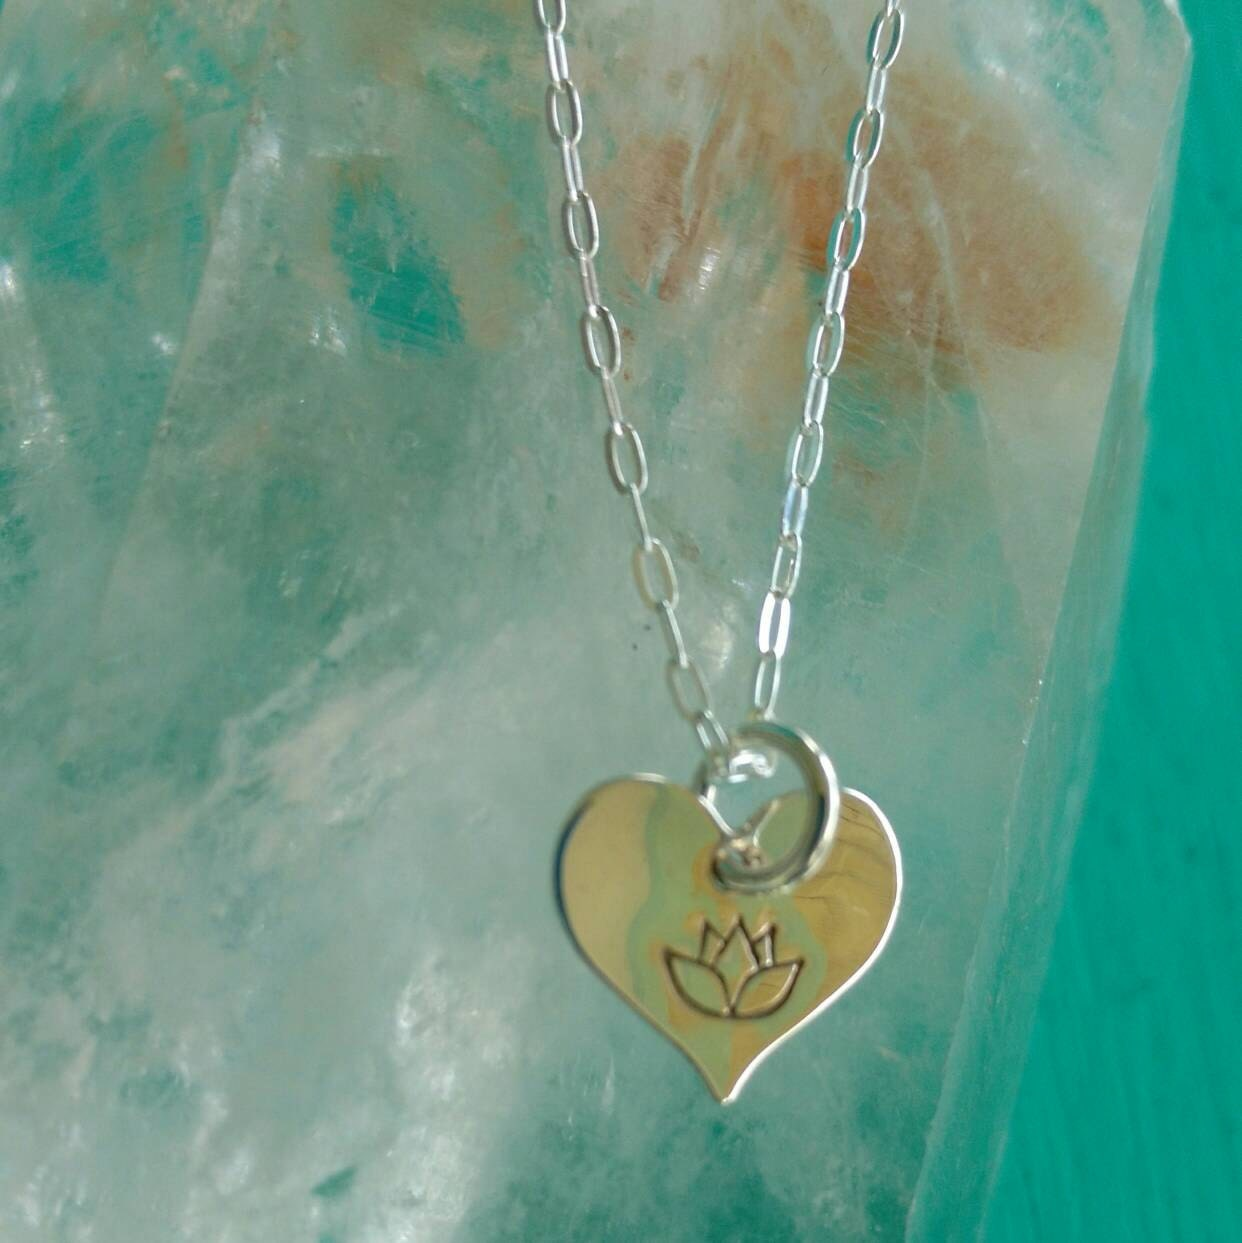 Lotus Love Charm Lotus Flower Jewelry Tiny Heart Necklace With